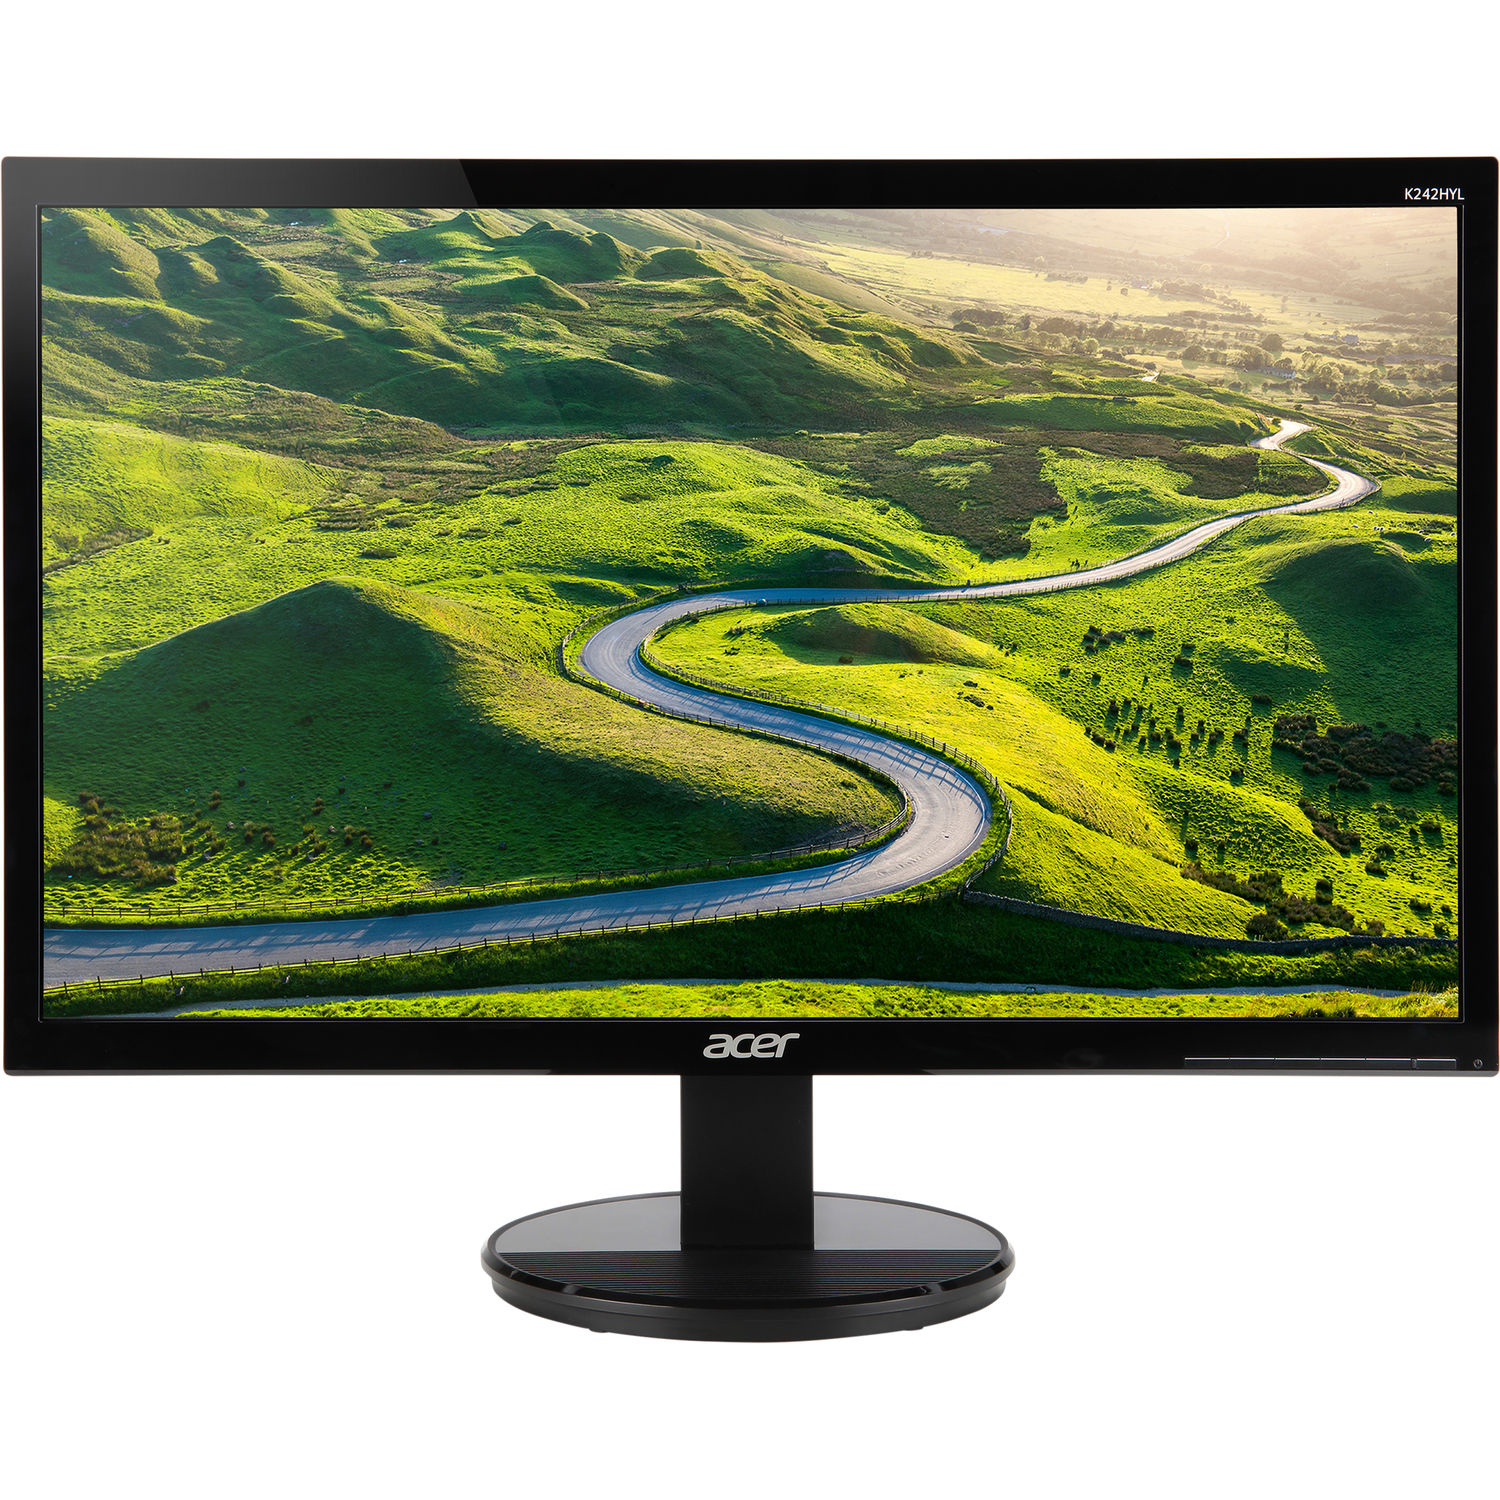 """Refurbished Acer K2 - 23.8"""" LCD Widescreen Monitor 16:9 Full HD 1920 x 1080 4ms 60Hz 250 nit"""